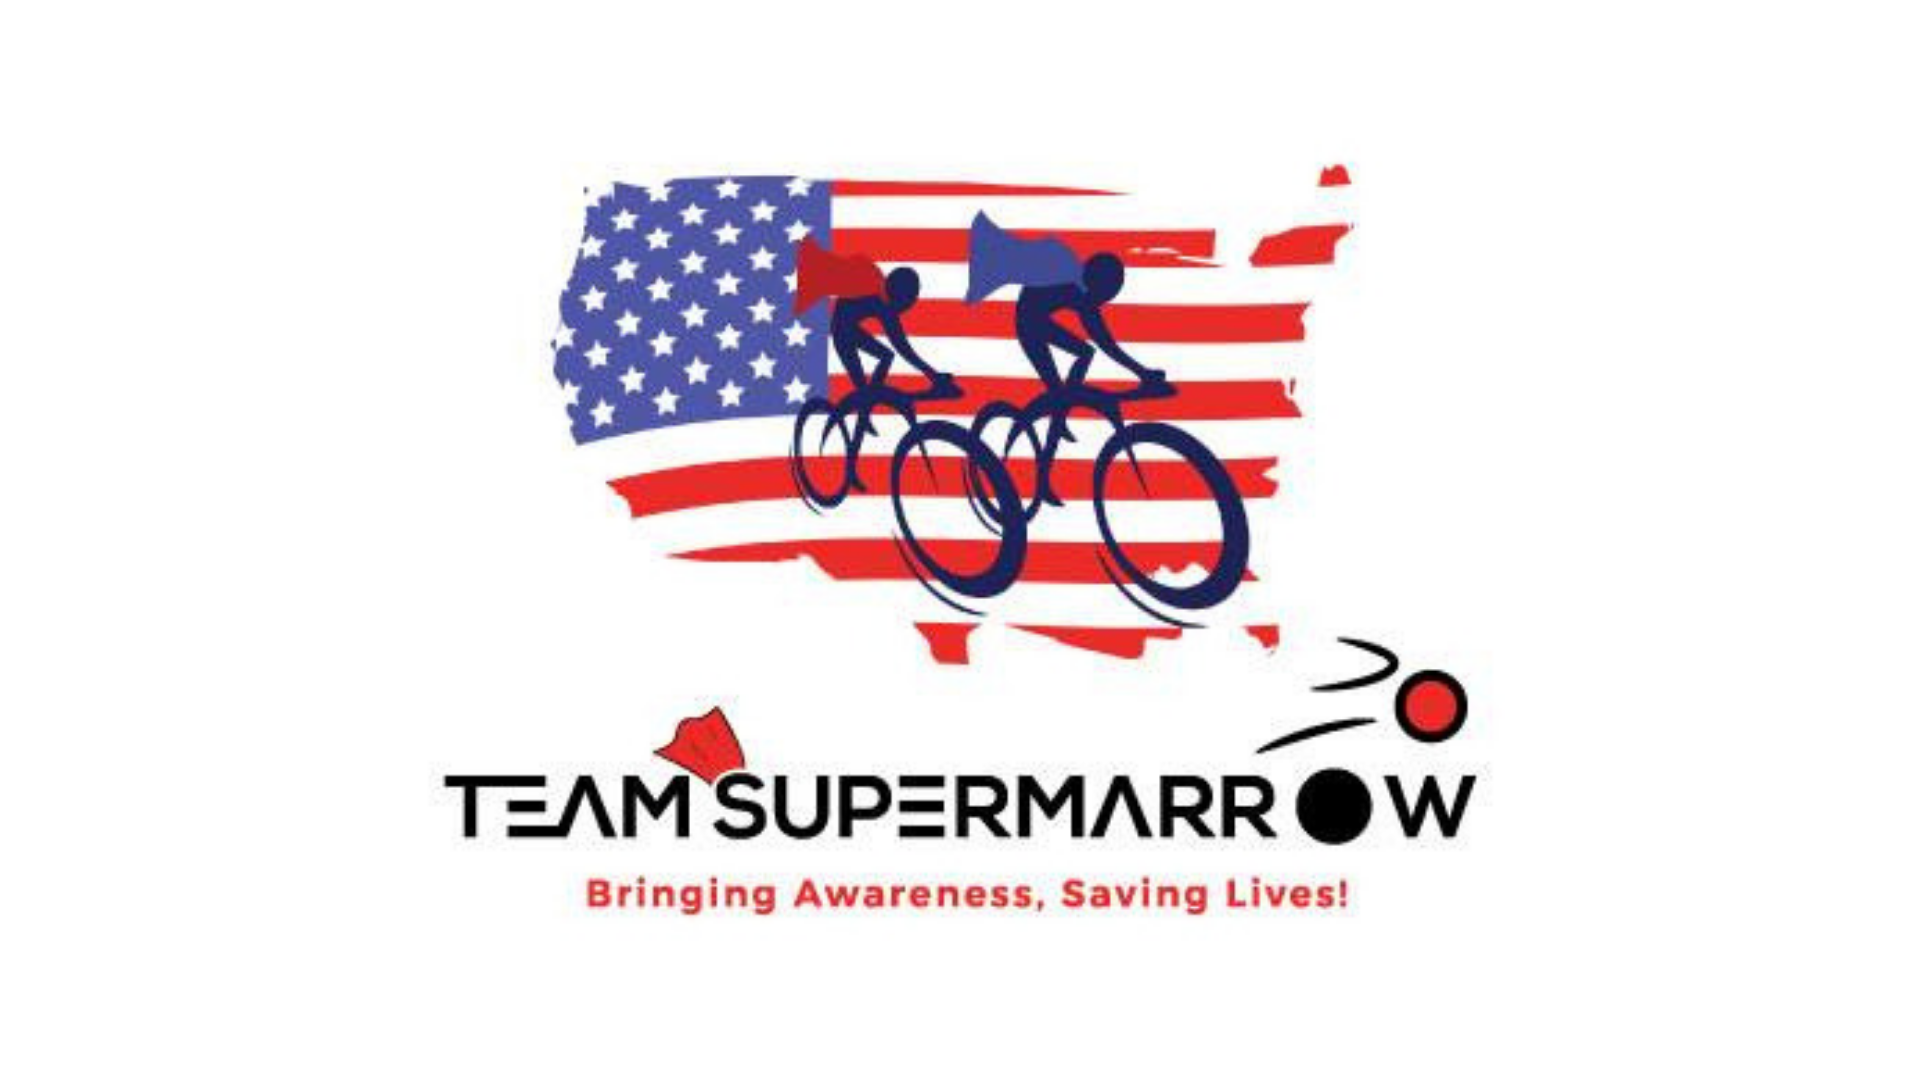 Team SuperMarrow's Race Across America Official Cheerleaders Helping the Team Charge to the Finish Line of the World's Toughest Bicycle Race